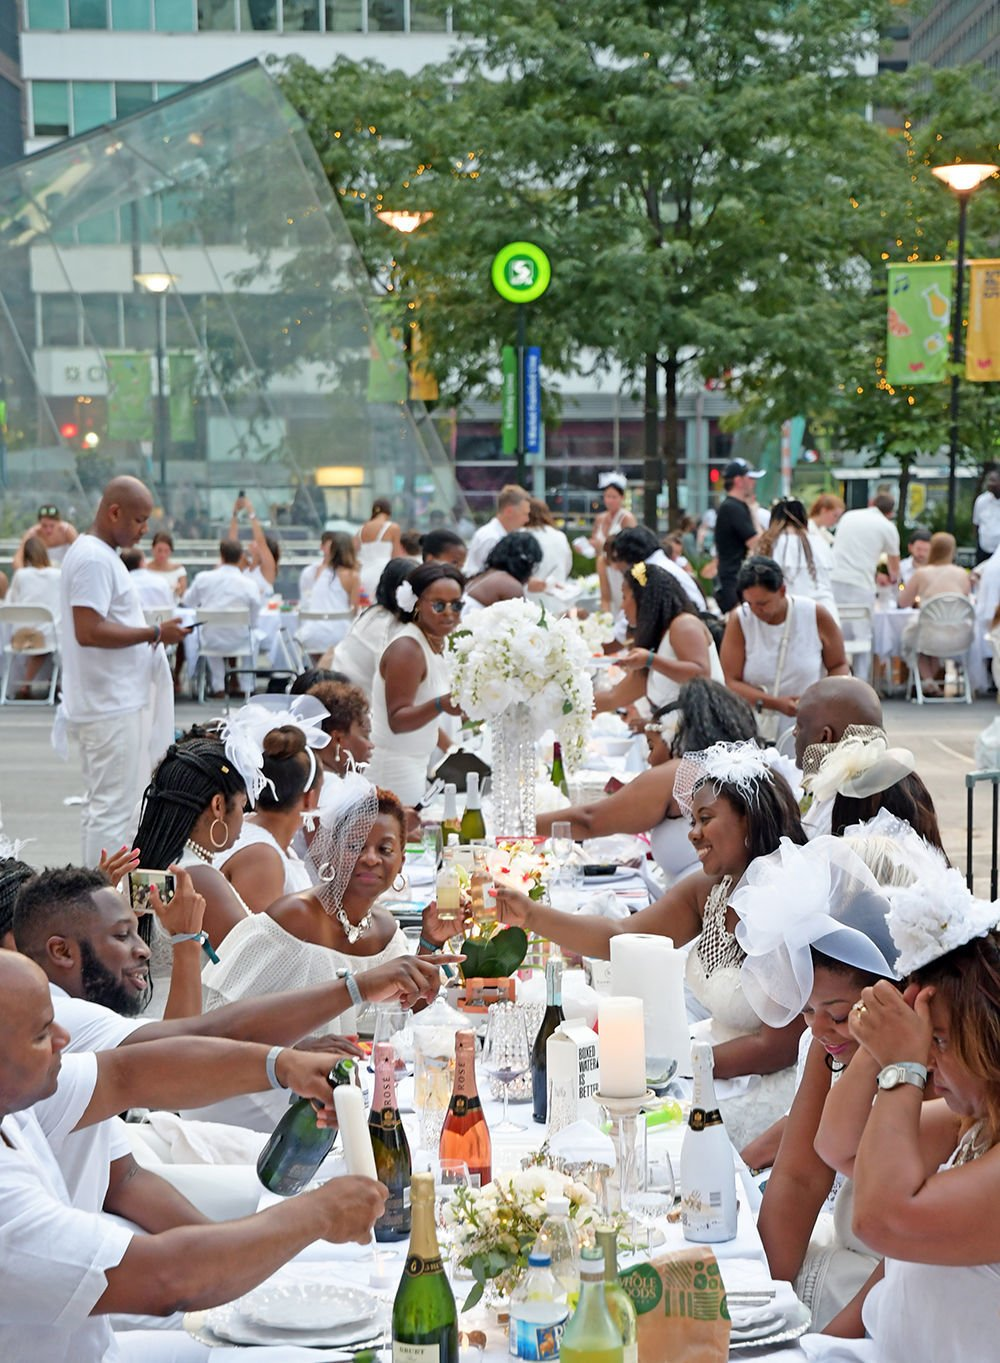 10 things to know about Dîner en Blanc